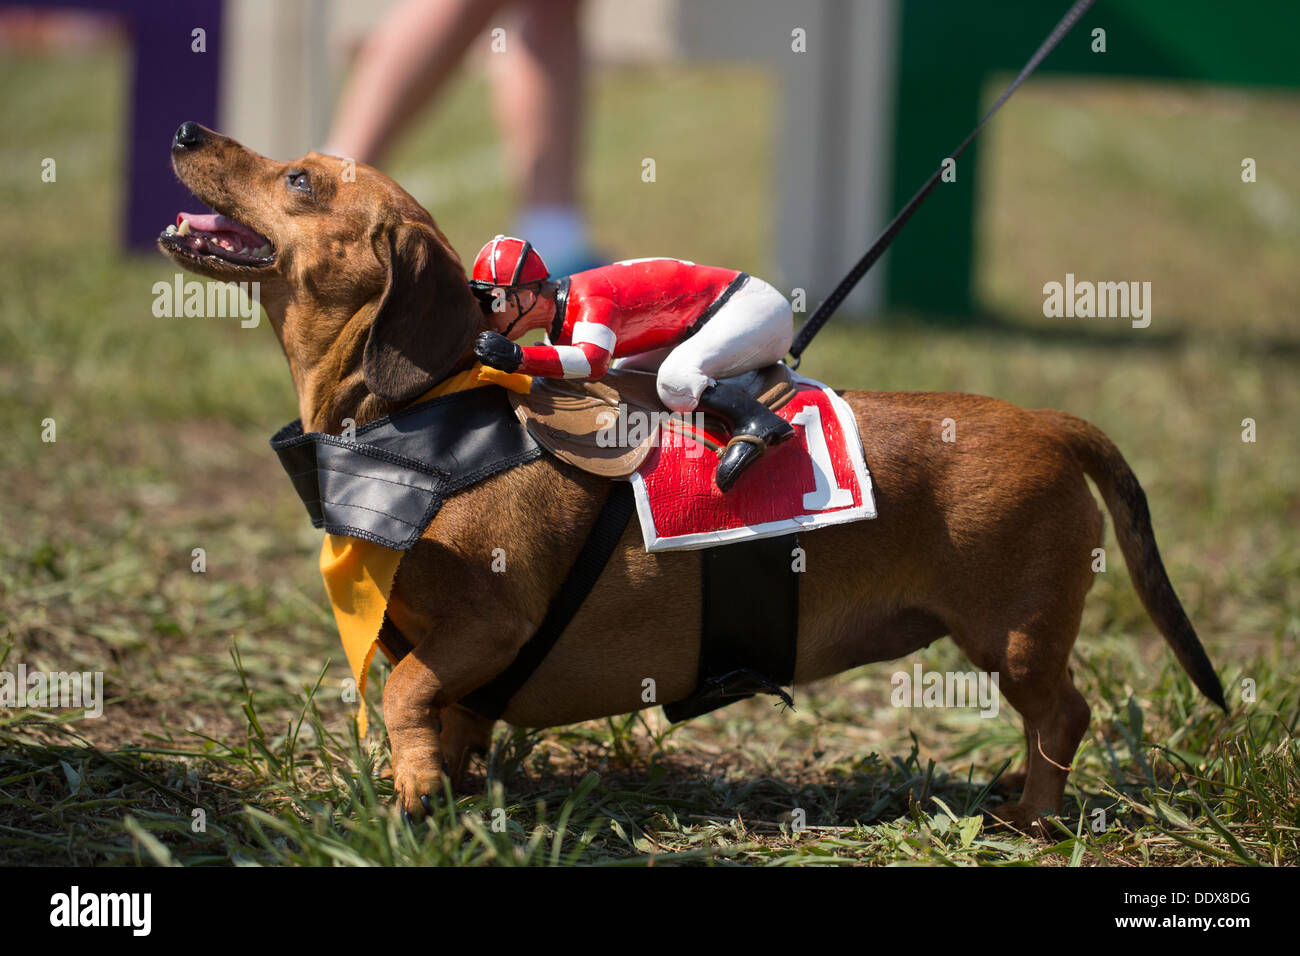 A shorthaired dachshund in costume pictured at the annual 'Wiener Takes All' Dachshund races in Bella Vista, Ark. - Stock Image